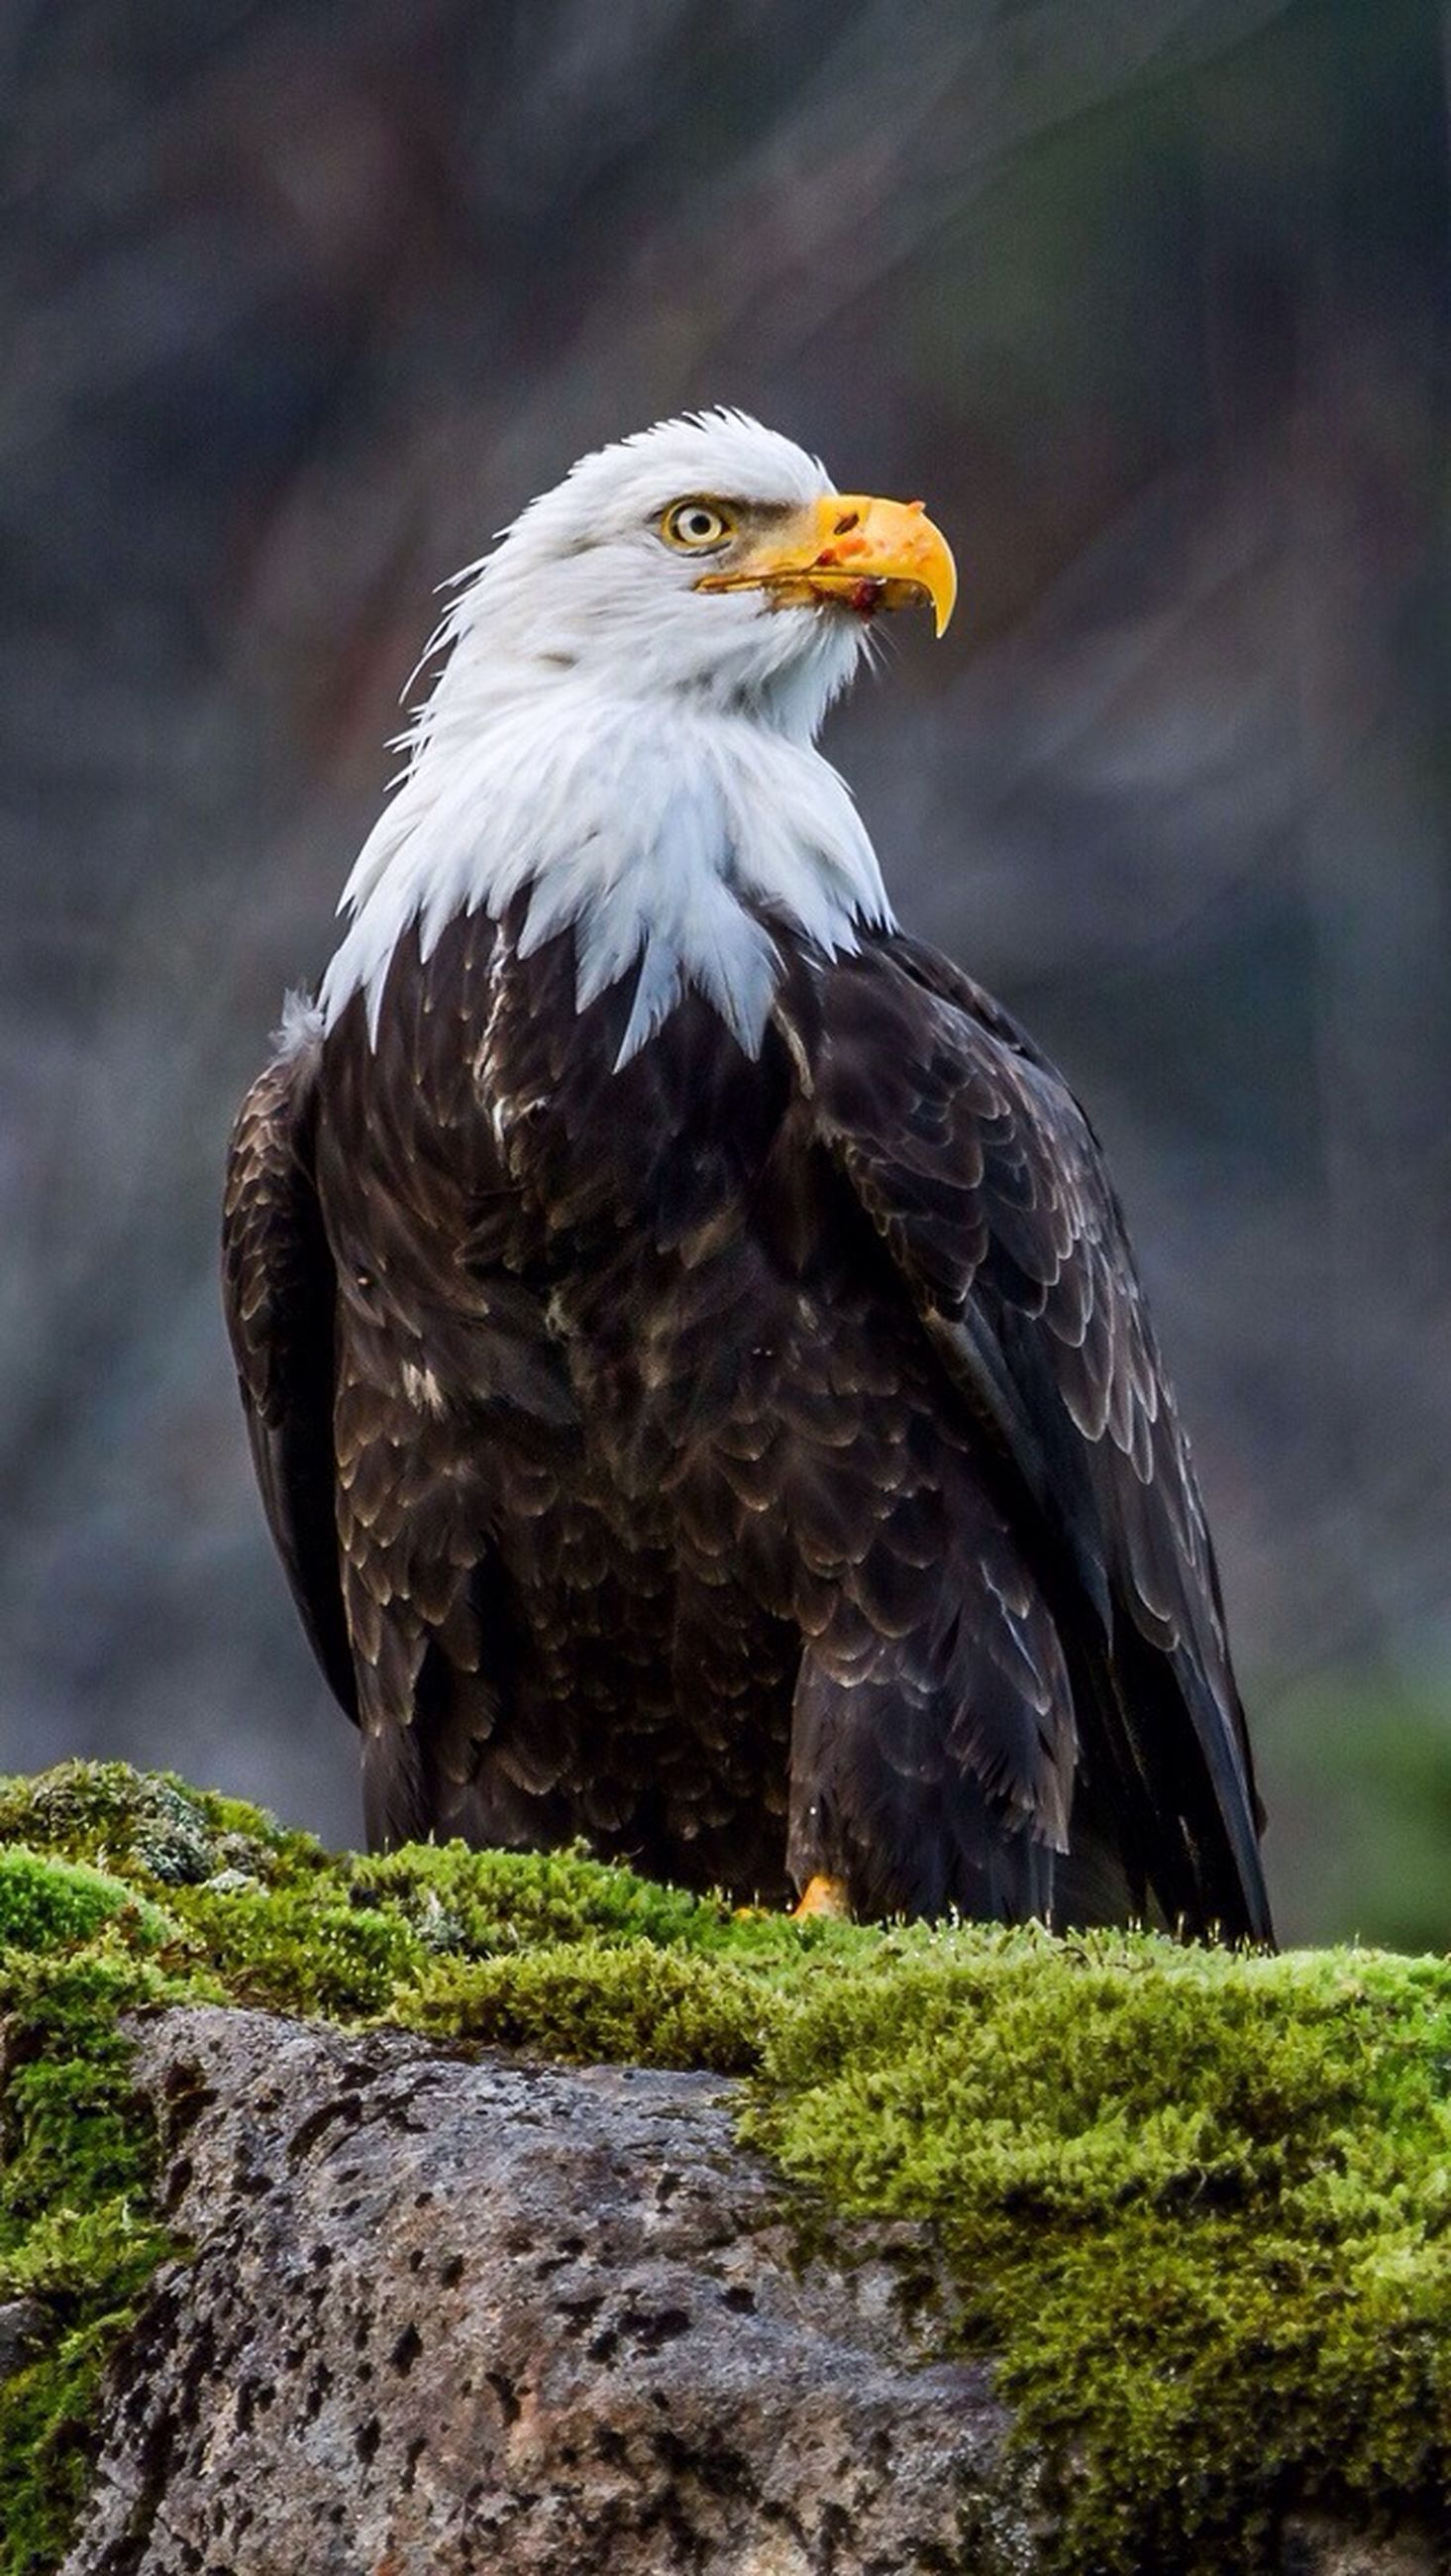 bird, animal themes, animals in the wild, one animal, wildlife, focus on foreground, perching, beak, close-up, rock - object, nature, full length, side view, outdoors, day, no people, beauty in nature, bird of prey, looking away, zoology